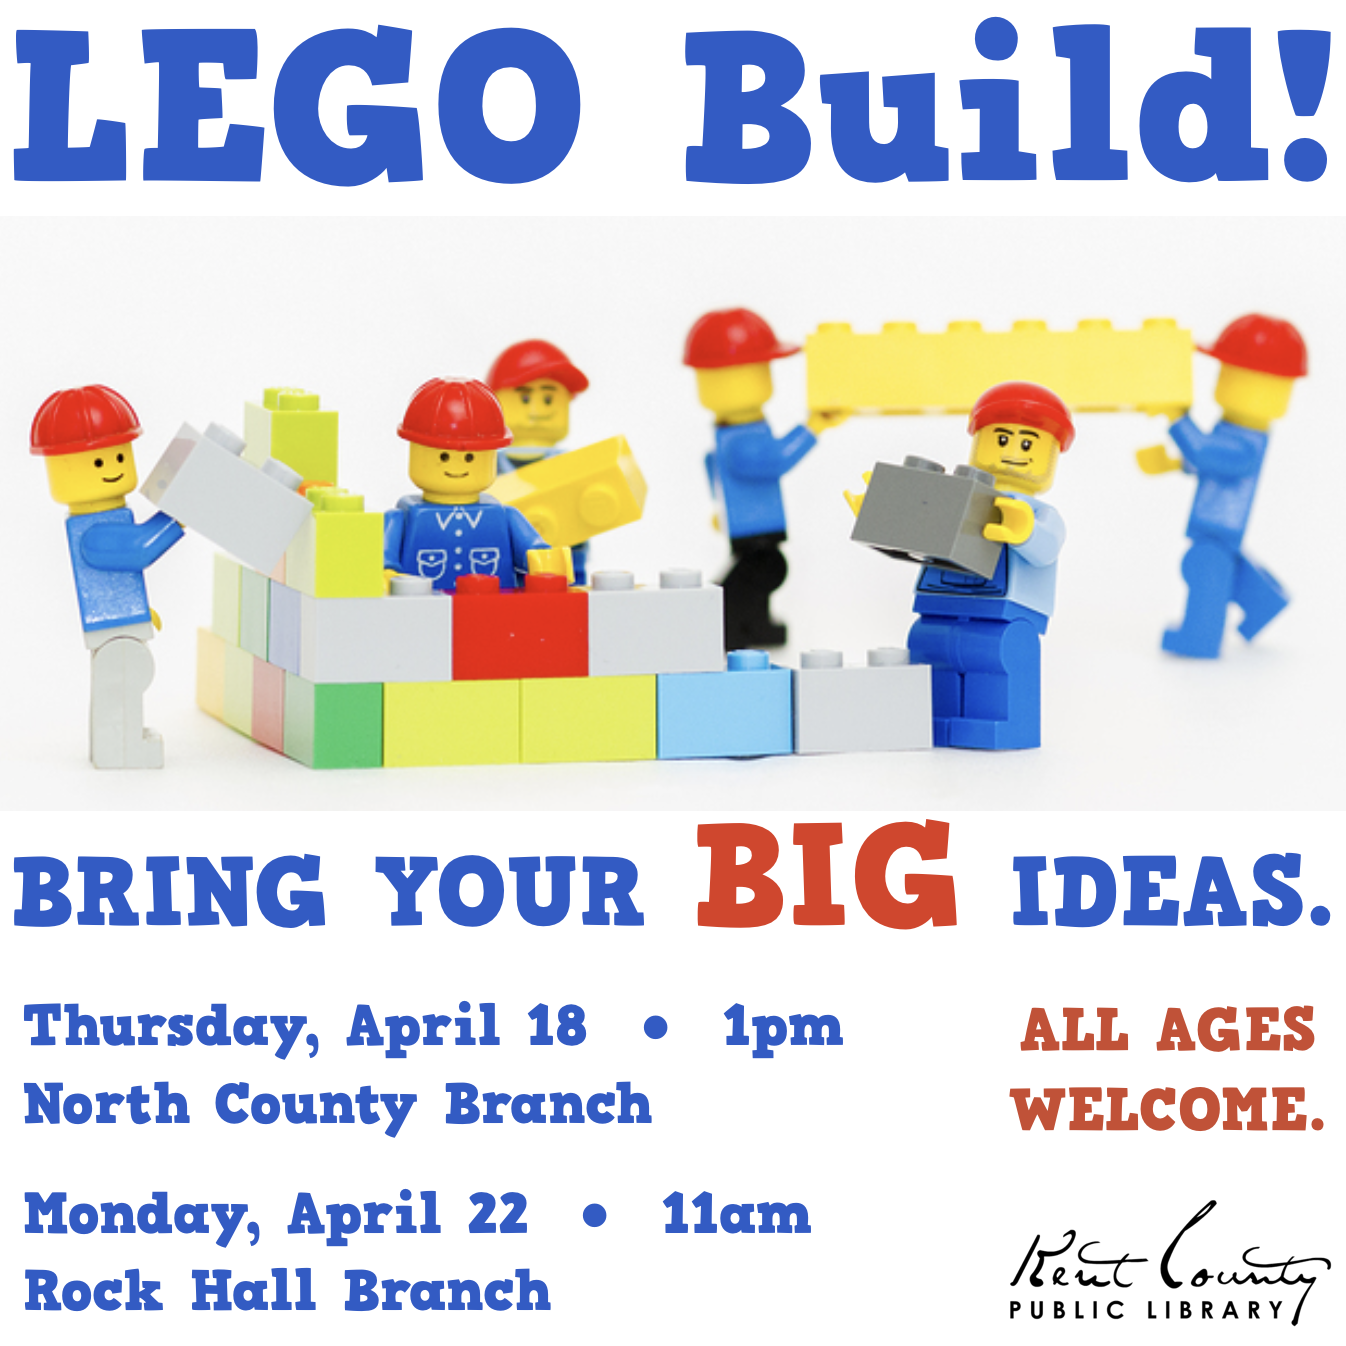 LEGO Build at Rock Hall